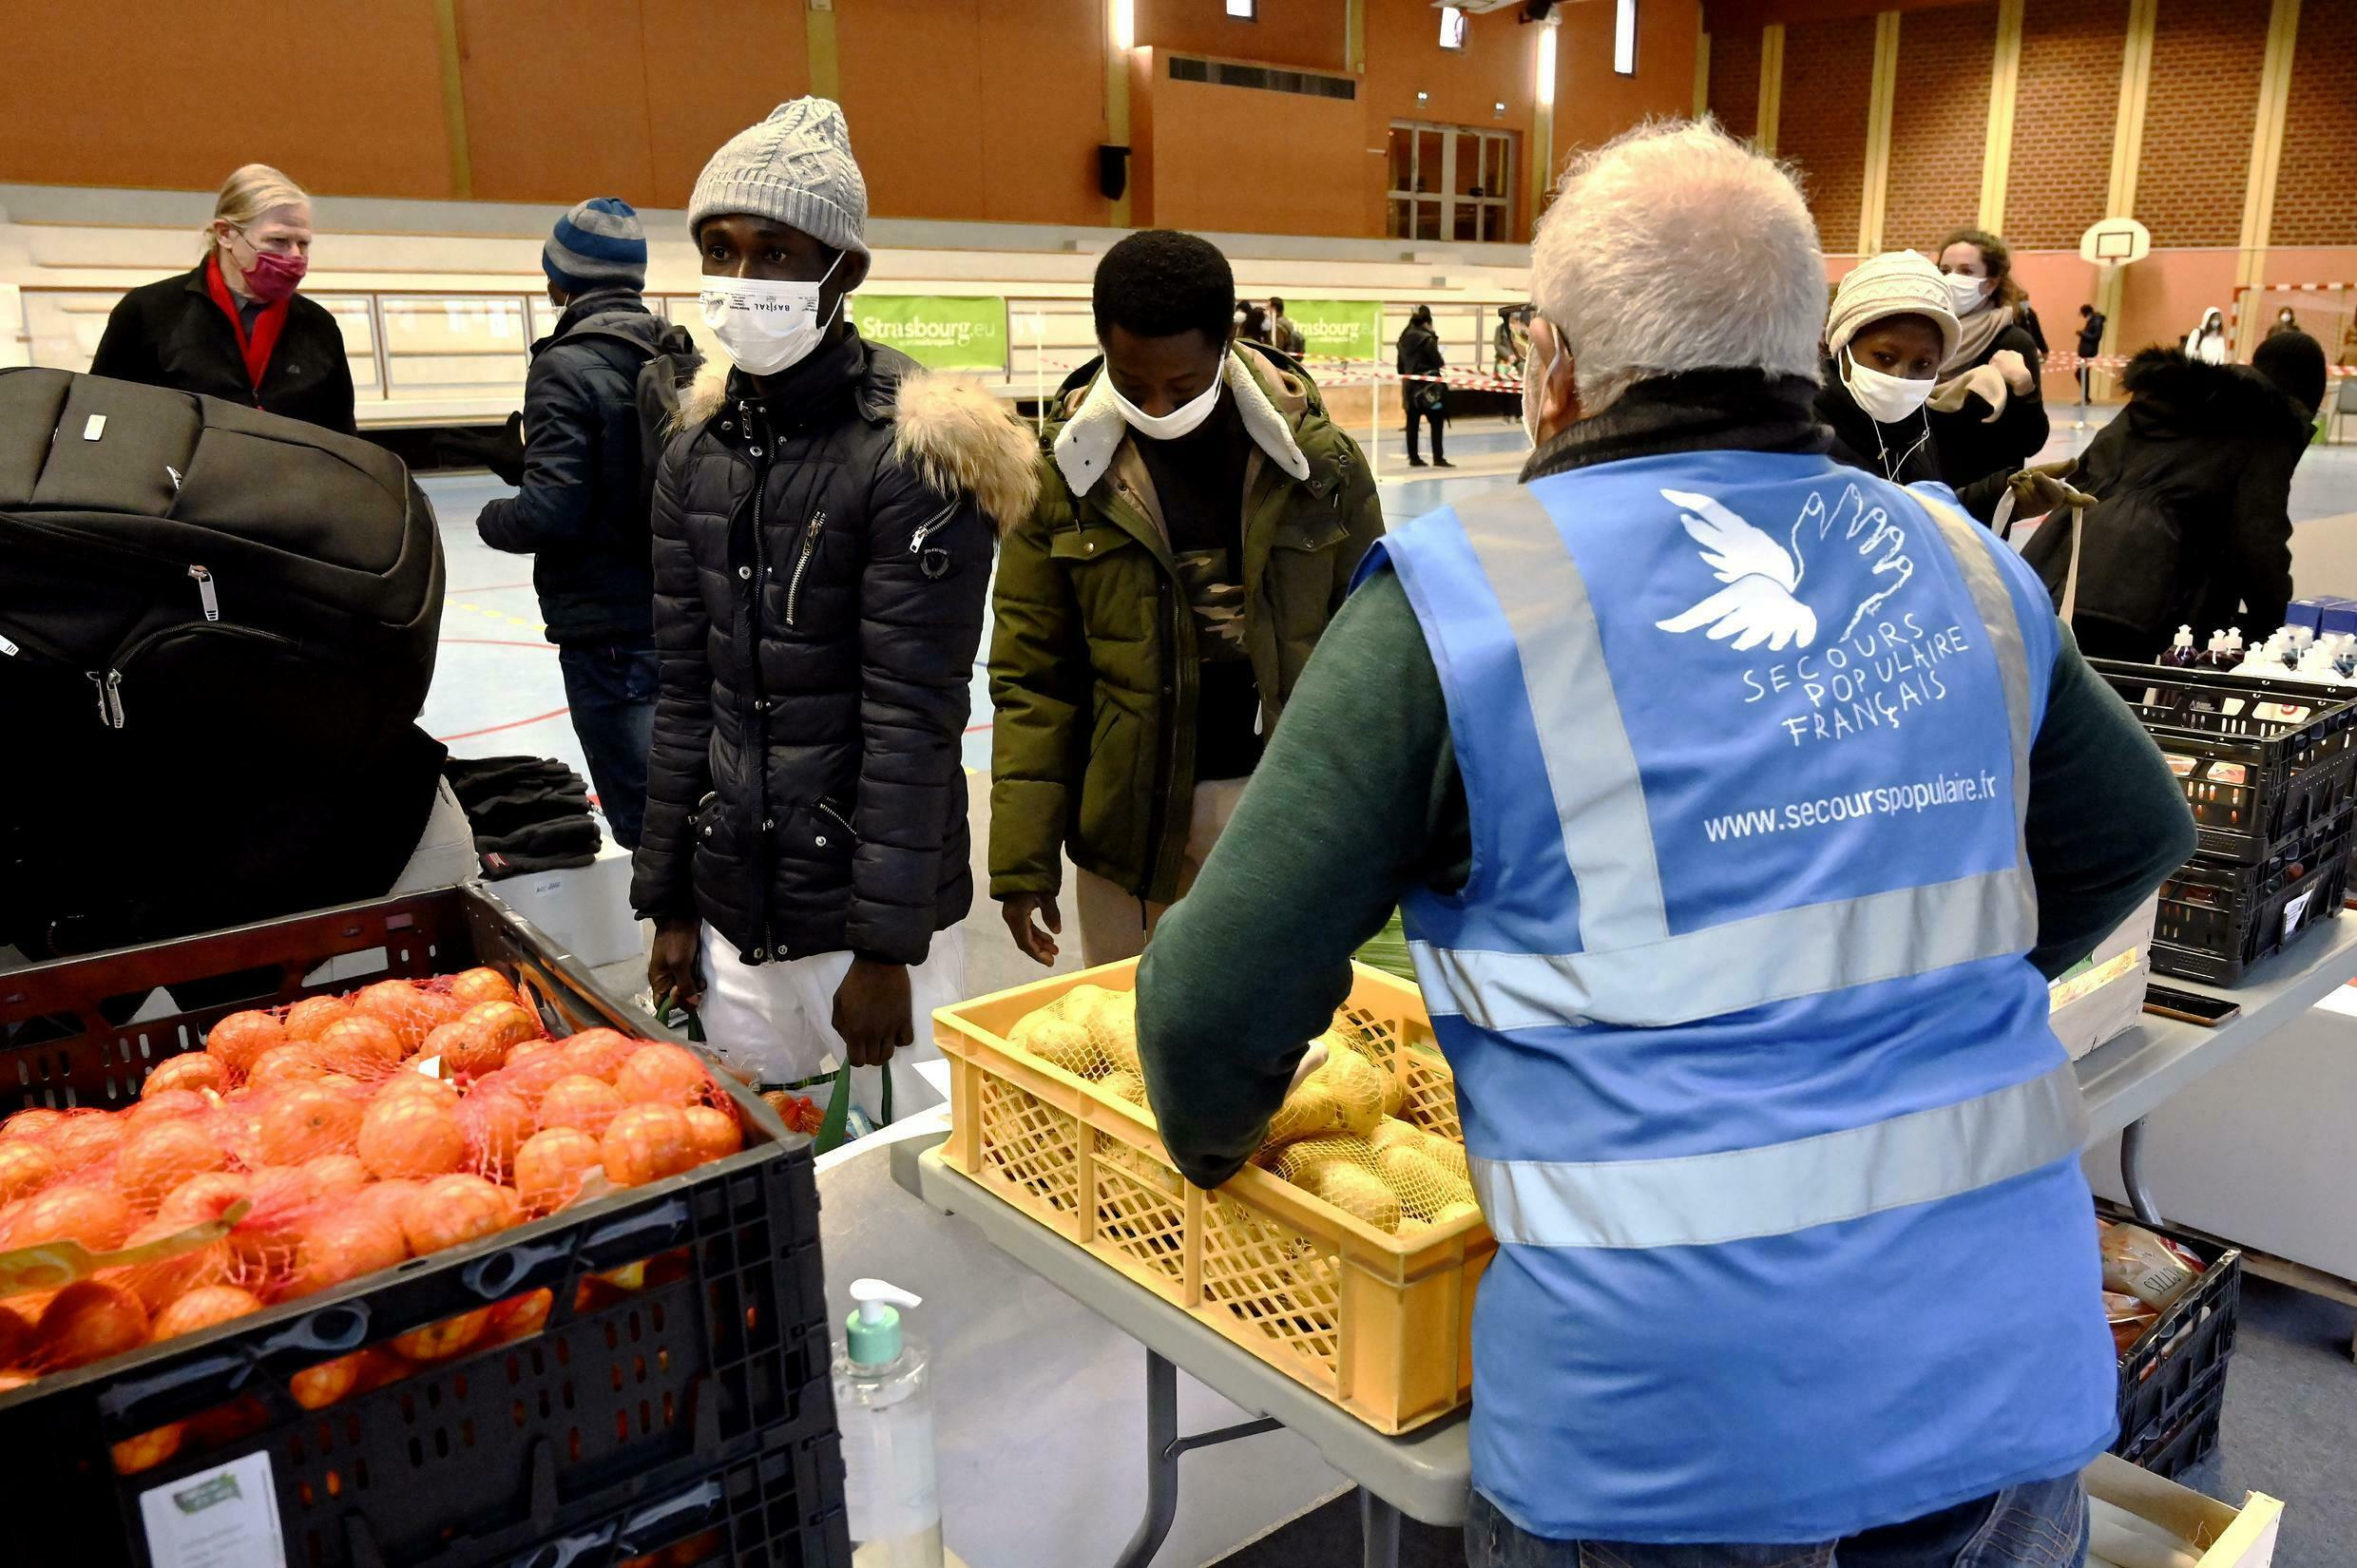 Students queue to receive a food aid package during a distribution by French charity 'Secours Populaire' in Strasbourg, eastern France, on December 12, 2020.